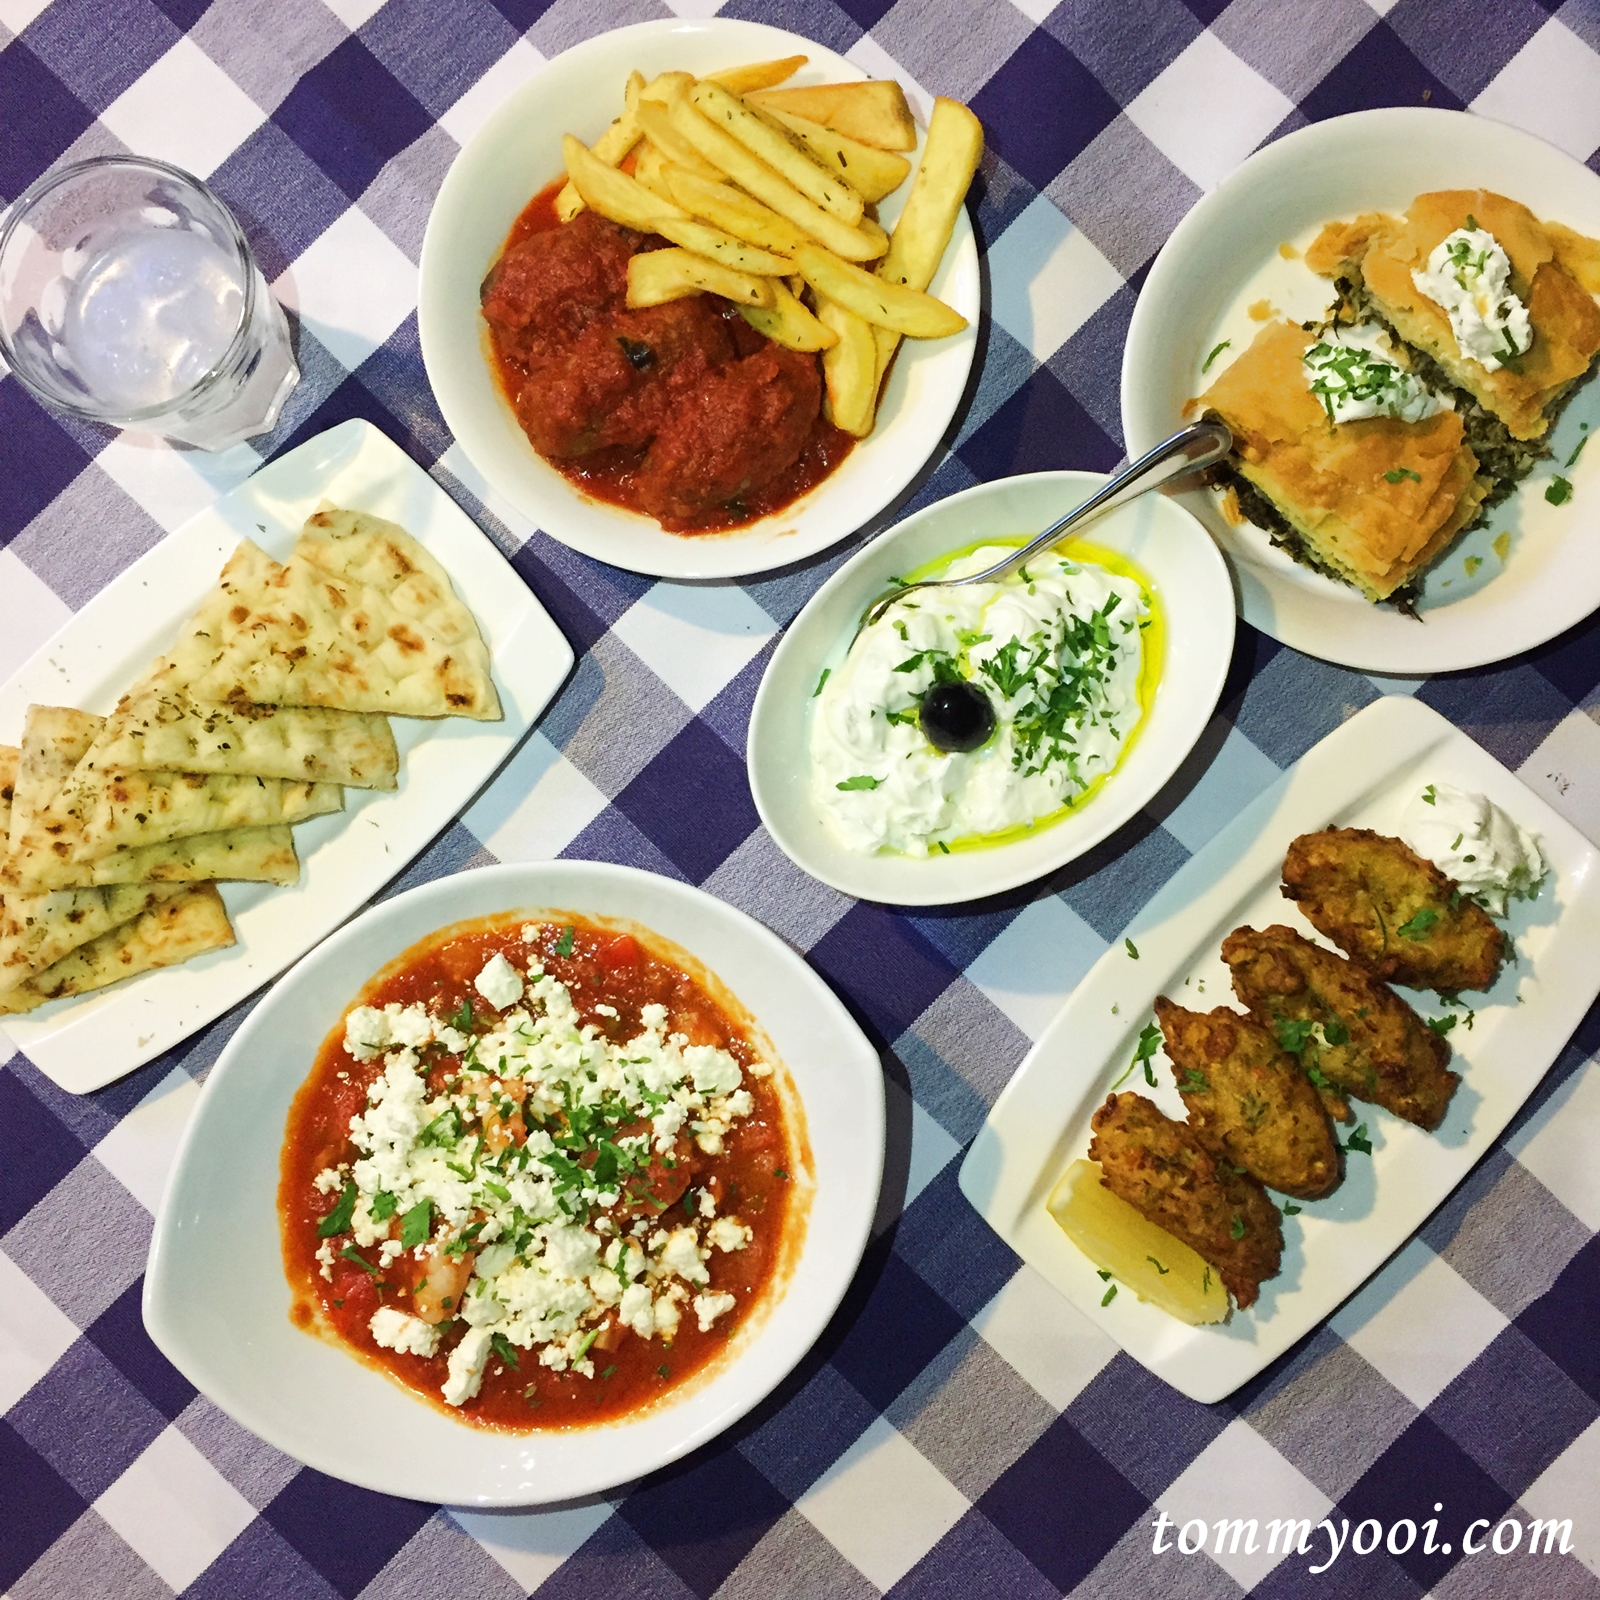 Acropolis authentic greek cuisine in abu dhabi tommy for Authentic greek cuisine